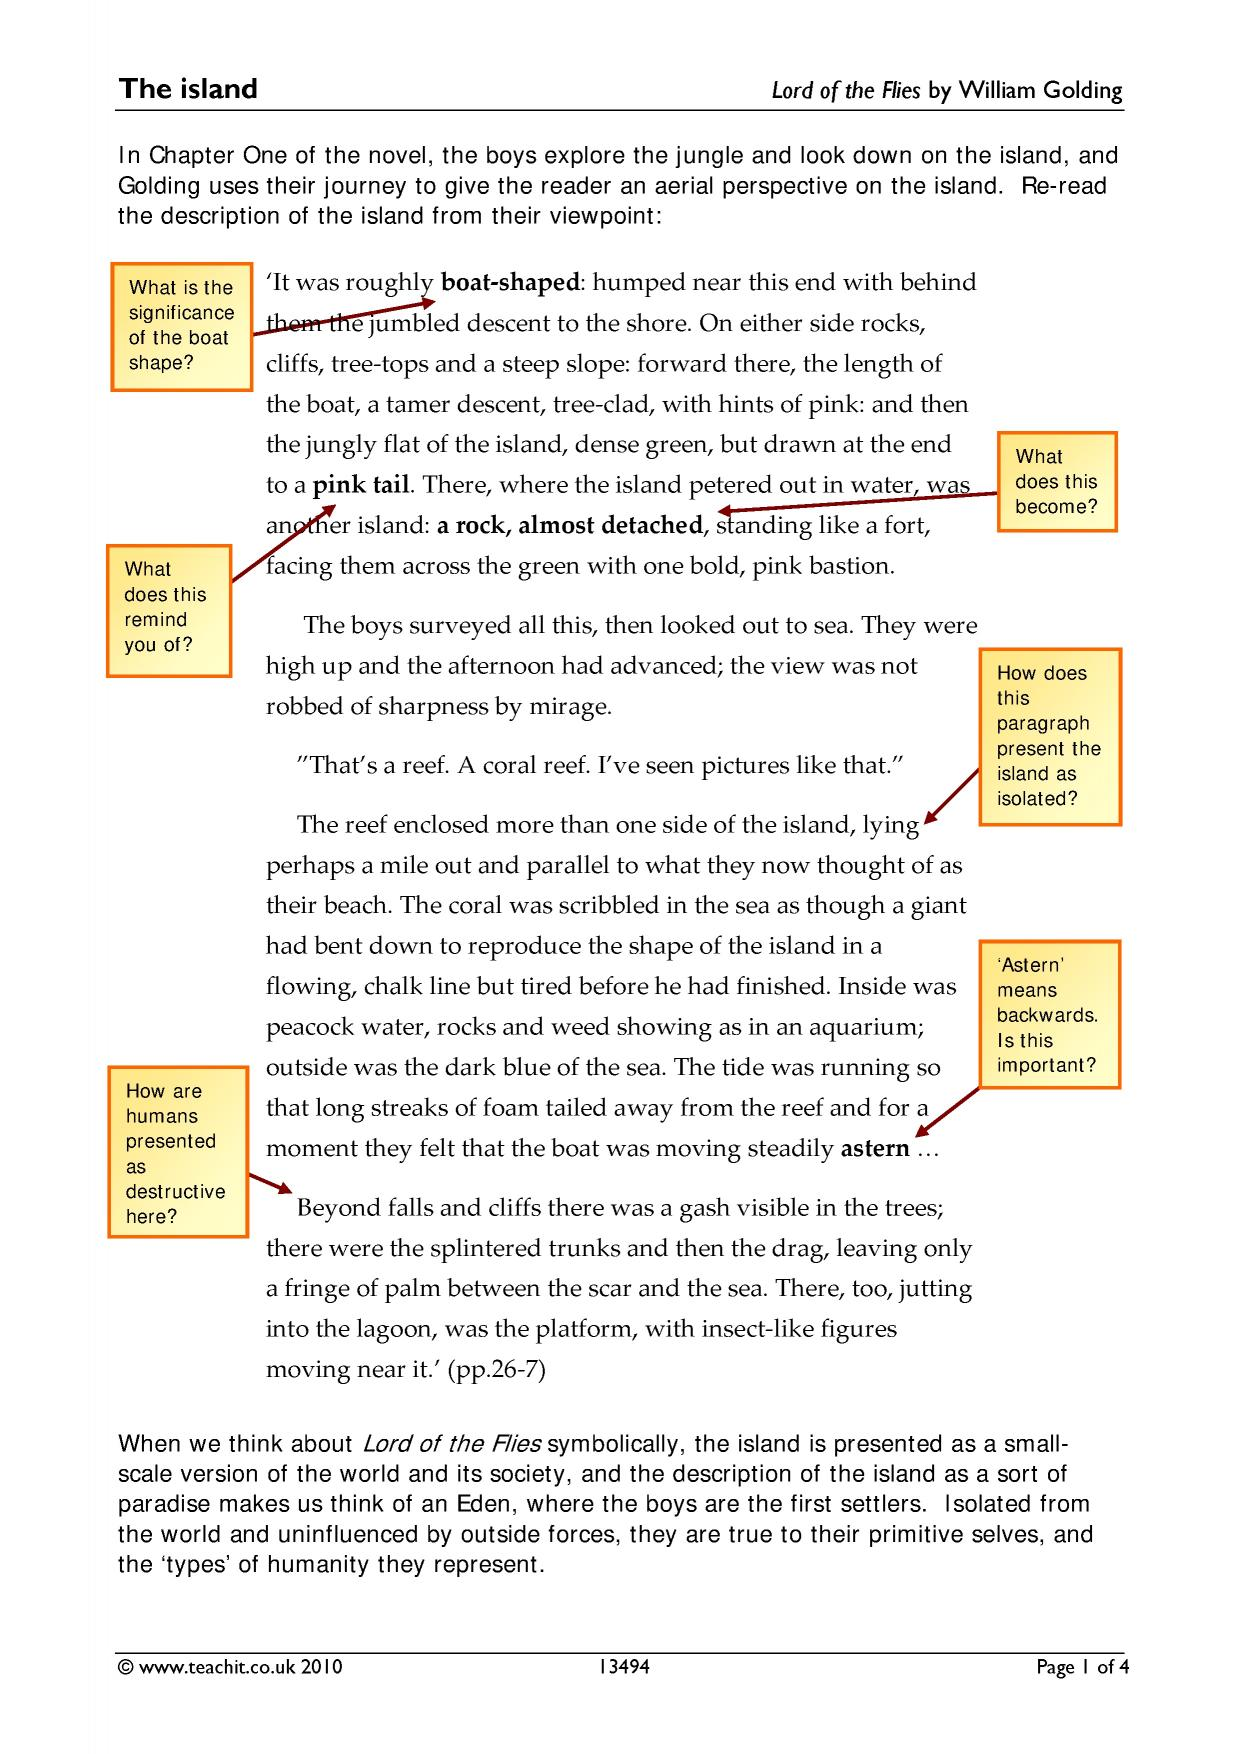 a focus on the character ralph in lord of the flies Main characters: followers if you're having difficulty keeping track of piggy or other characters in lord of the flies, refresh your memory with this brief summary piggy - in lord of the flies, piggy represents civilizationhe tries to figure things out logically and scientifically.